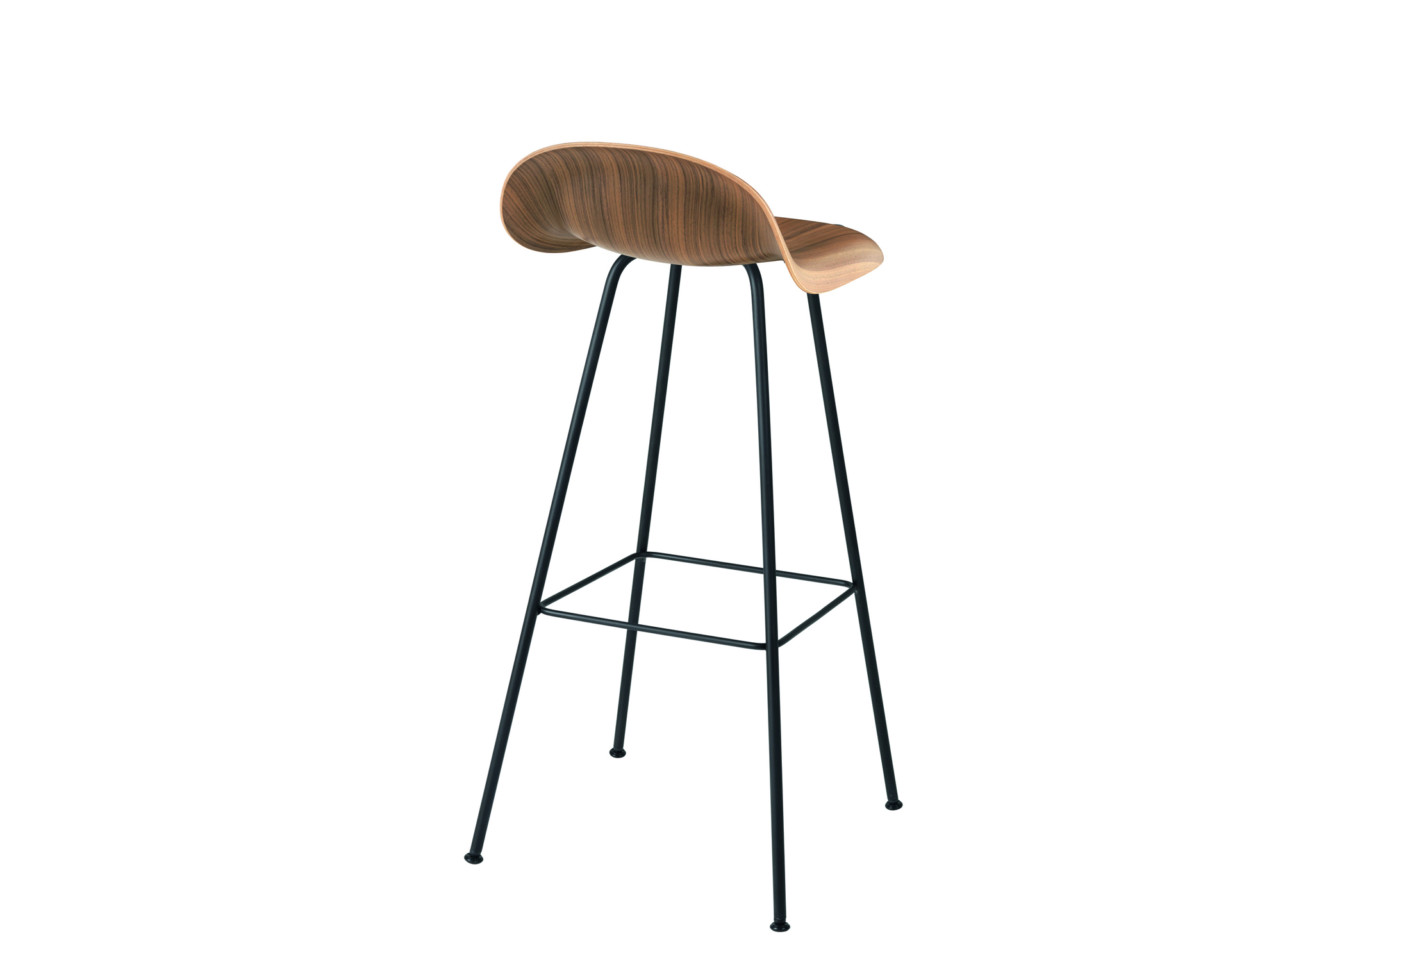 Chair i stool with metal legs by gubi stylepark for Stool chair